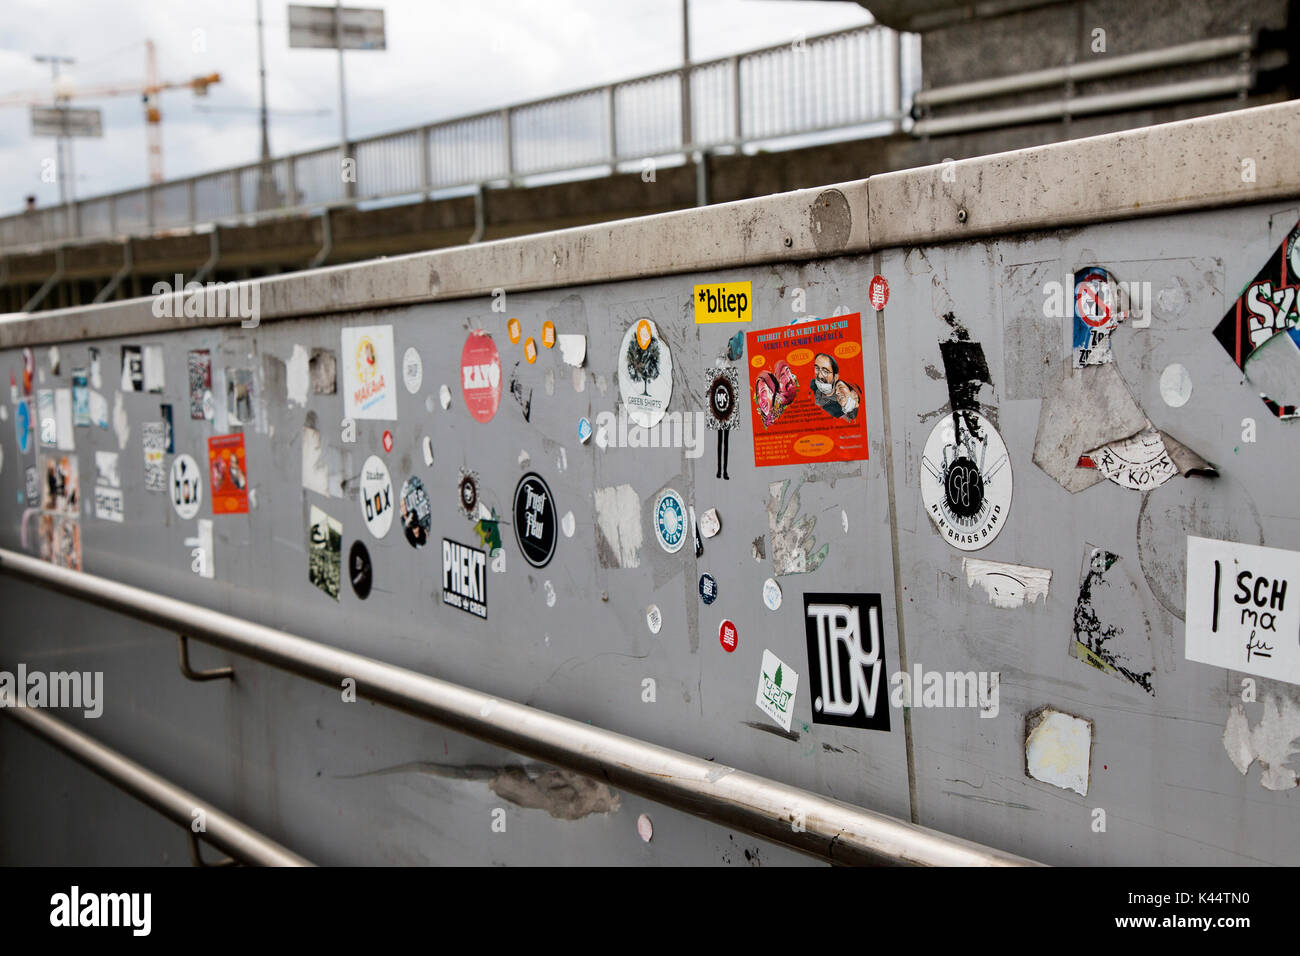 The walls and walkway outside the Electronica Centre, Linz, Austria are defaced by being covered in thousands of paper stickers. - Stock Image